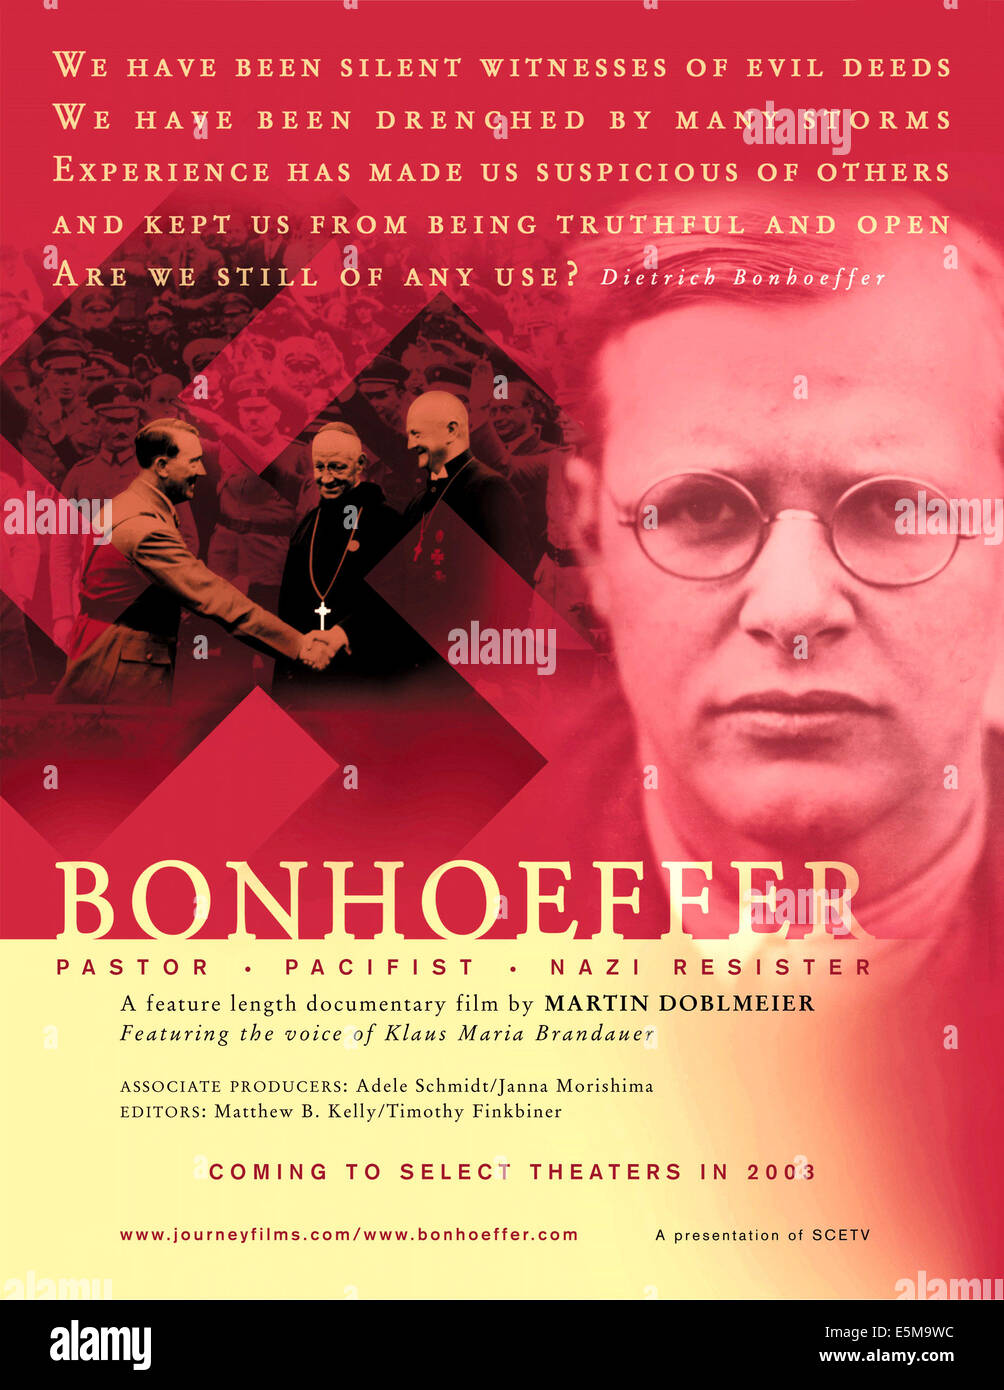 BONHOEFFER, 2003 - Stock Image